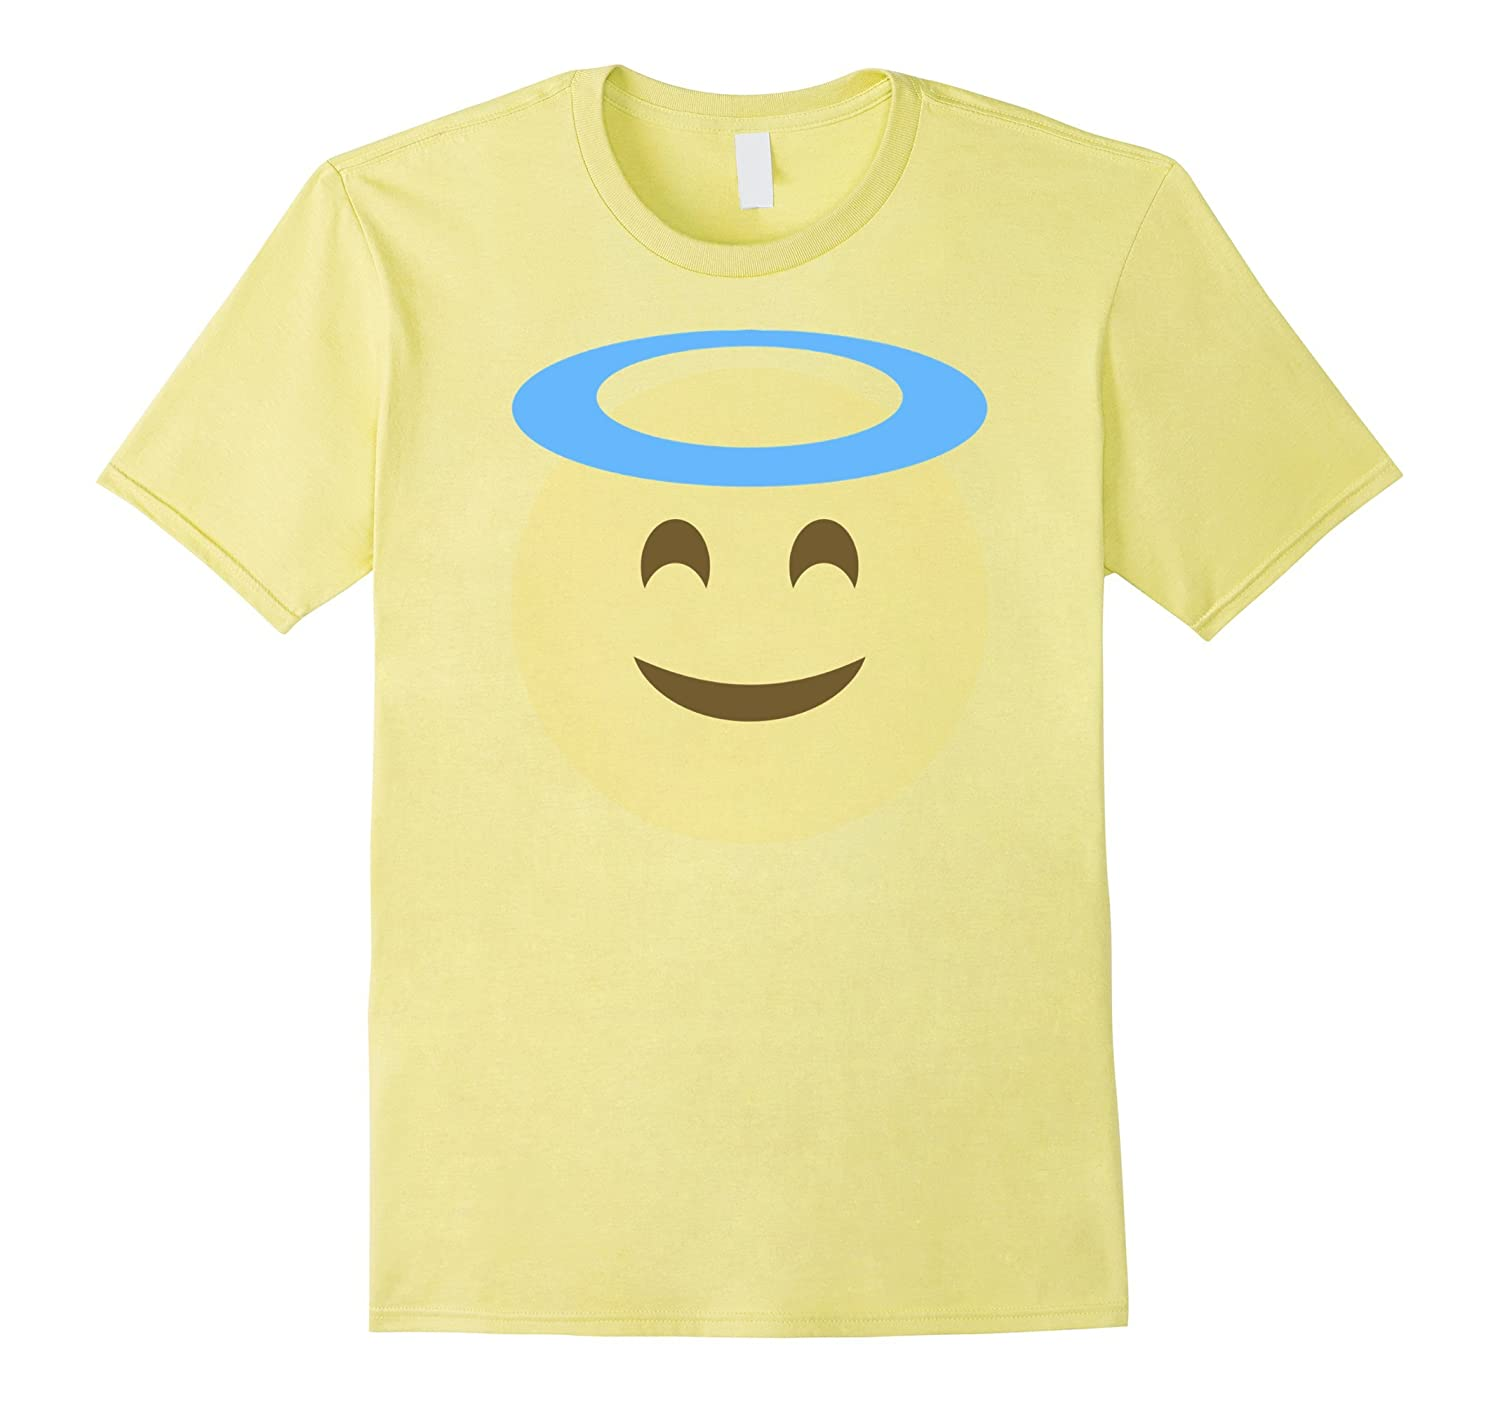 ANGEL SMILE FACE EMOJI T SHIRT Group Couple Costume T Shirt-FL